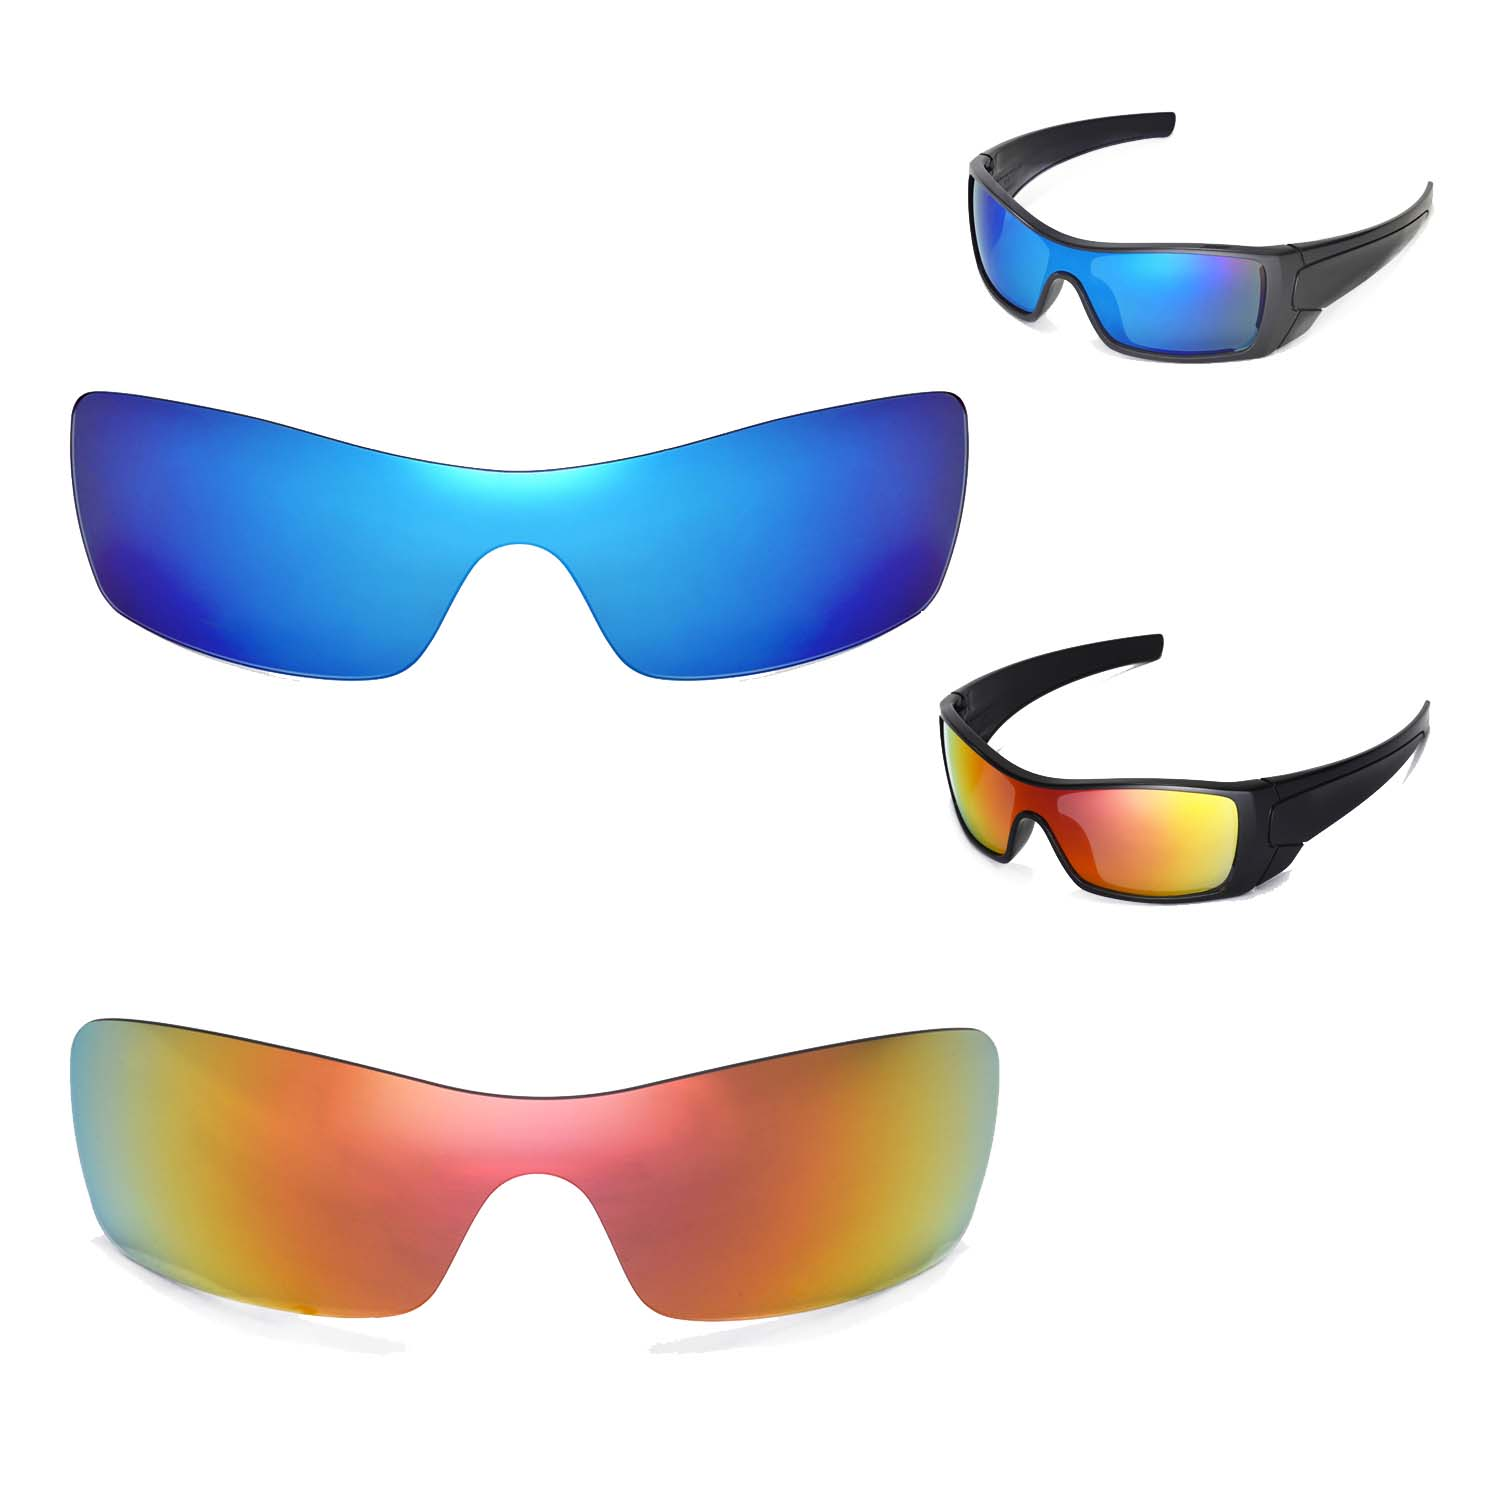 4517c187a8d Details about New Walleva Polarized Fire Red + Ice Blue Lenses For Oakley  Batwolf Sunglasses